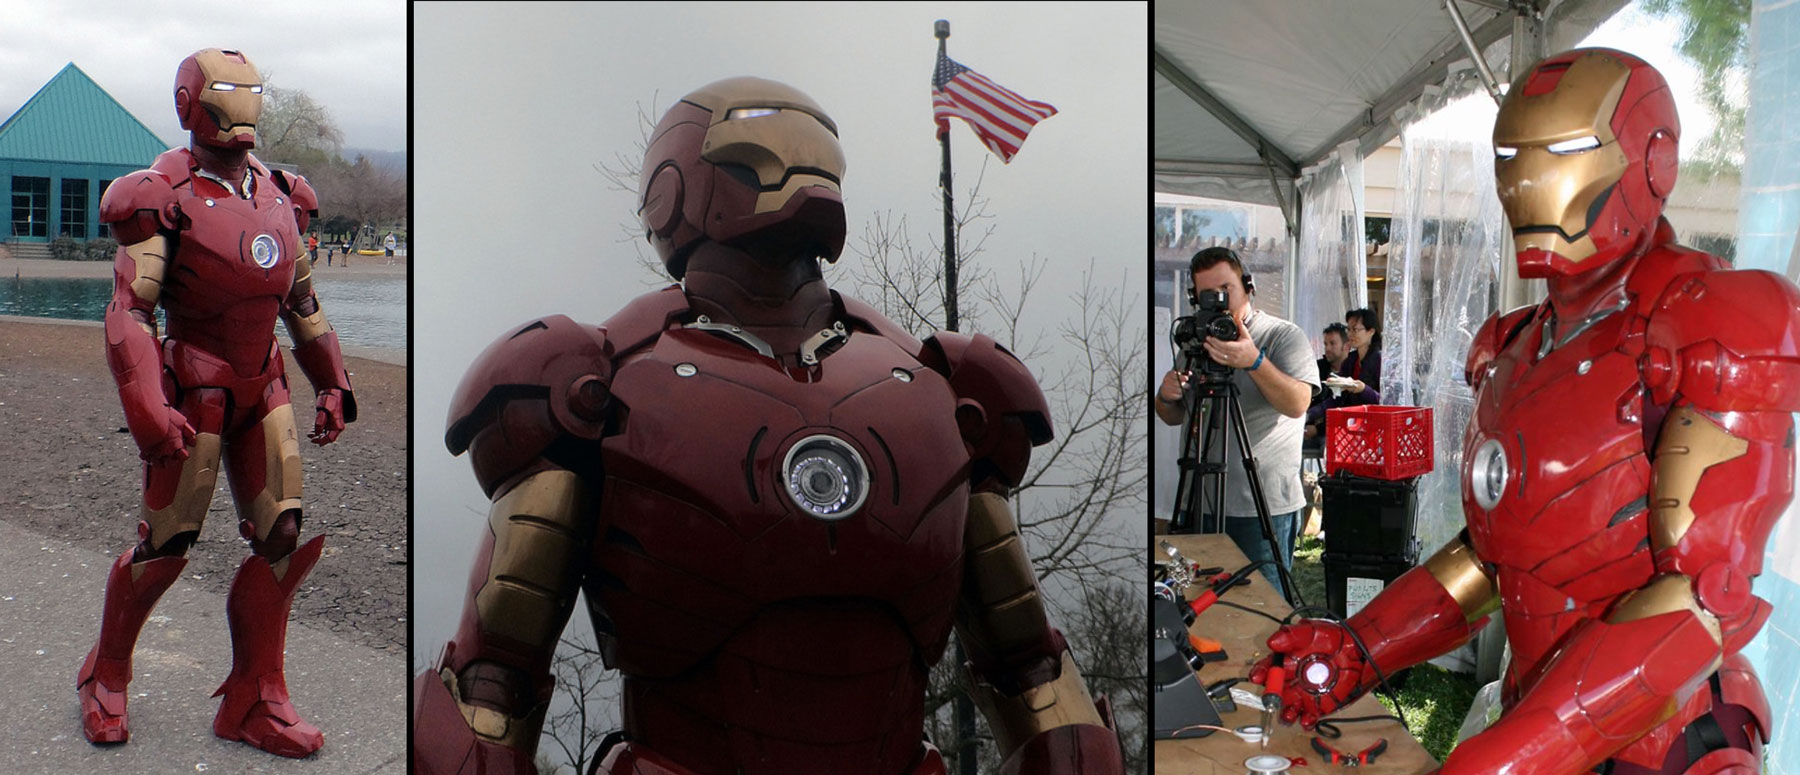 CarveWright made Iron Man Suit